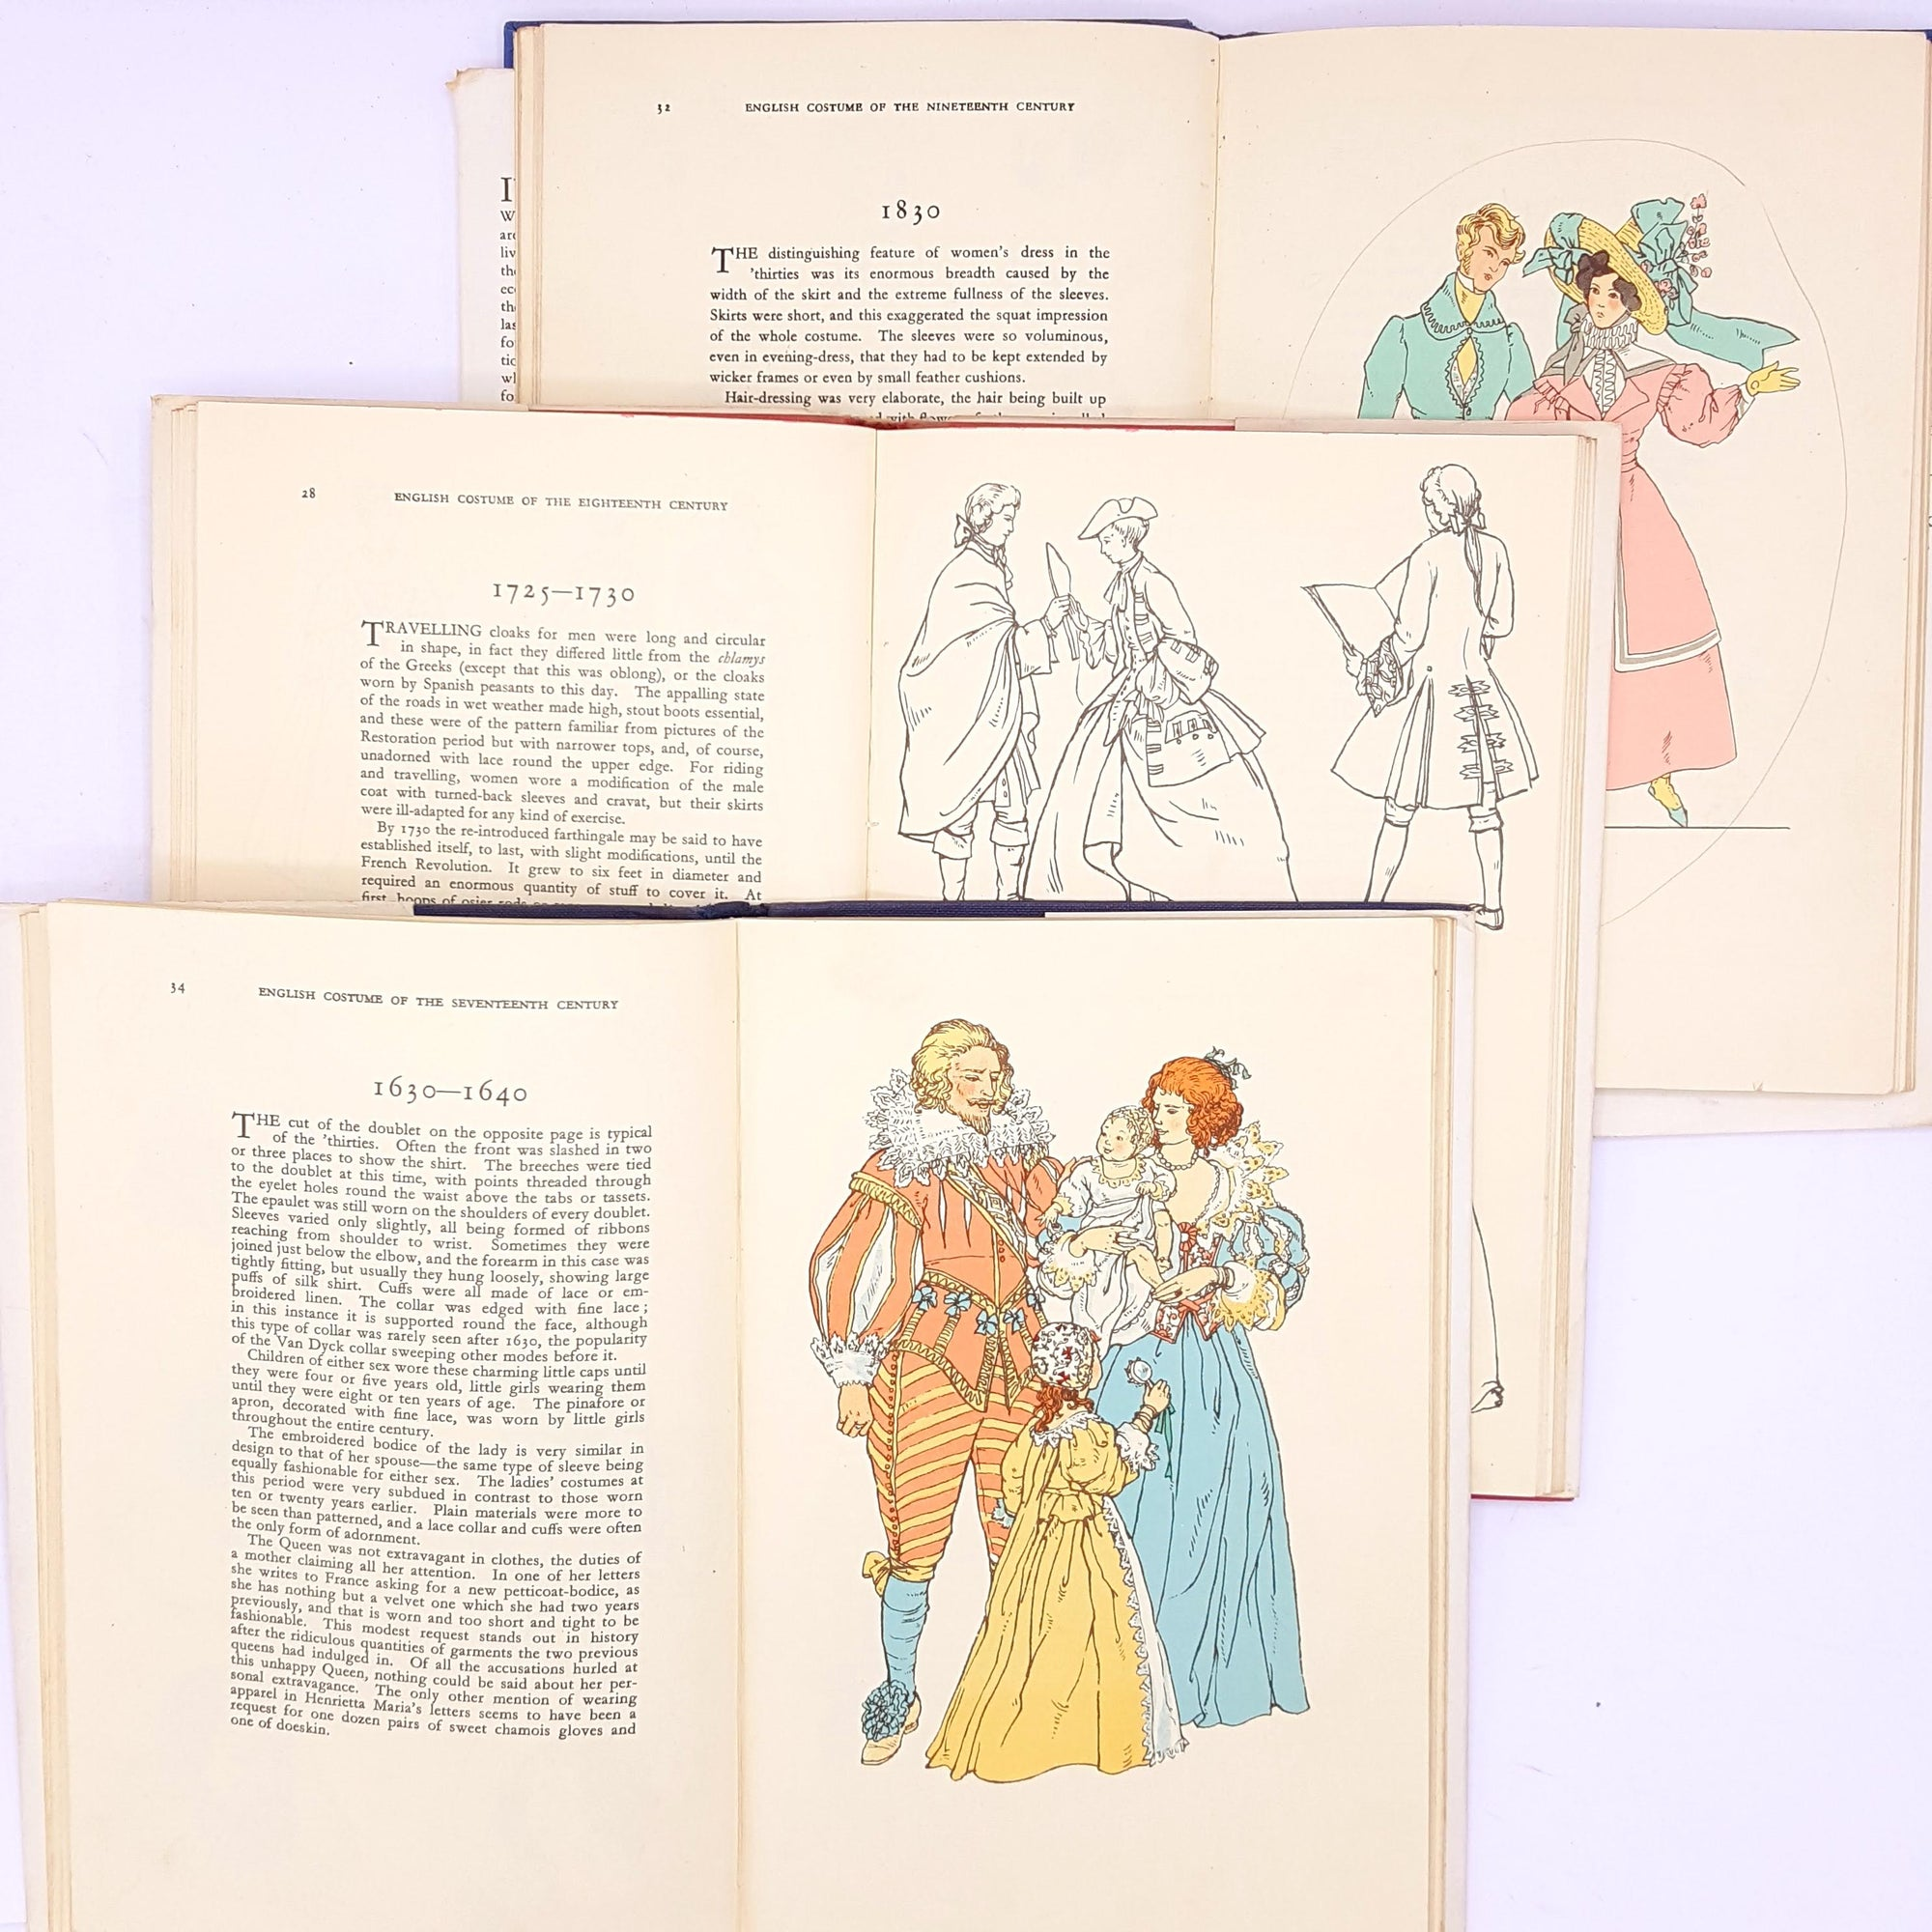 illustrated-fashion-historical-old-thrift-english-costume-of-the-seventeenth-eighteenth-nineteenth-century-patterned-classic-vintage-decorative-antique-country-house-library-books-